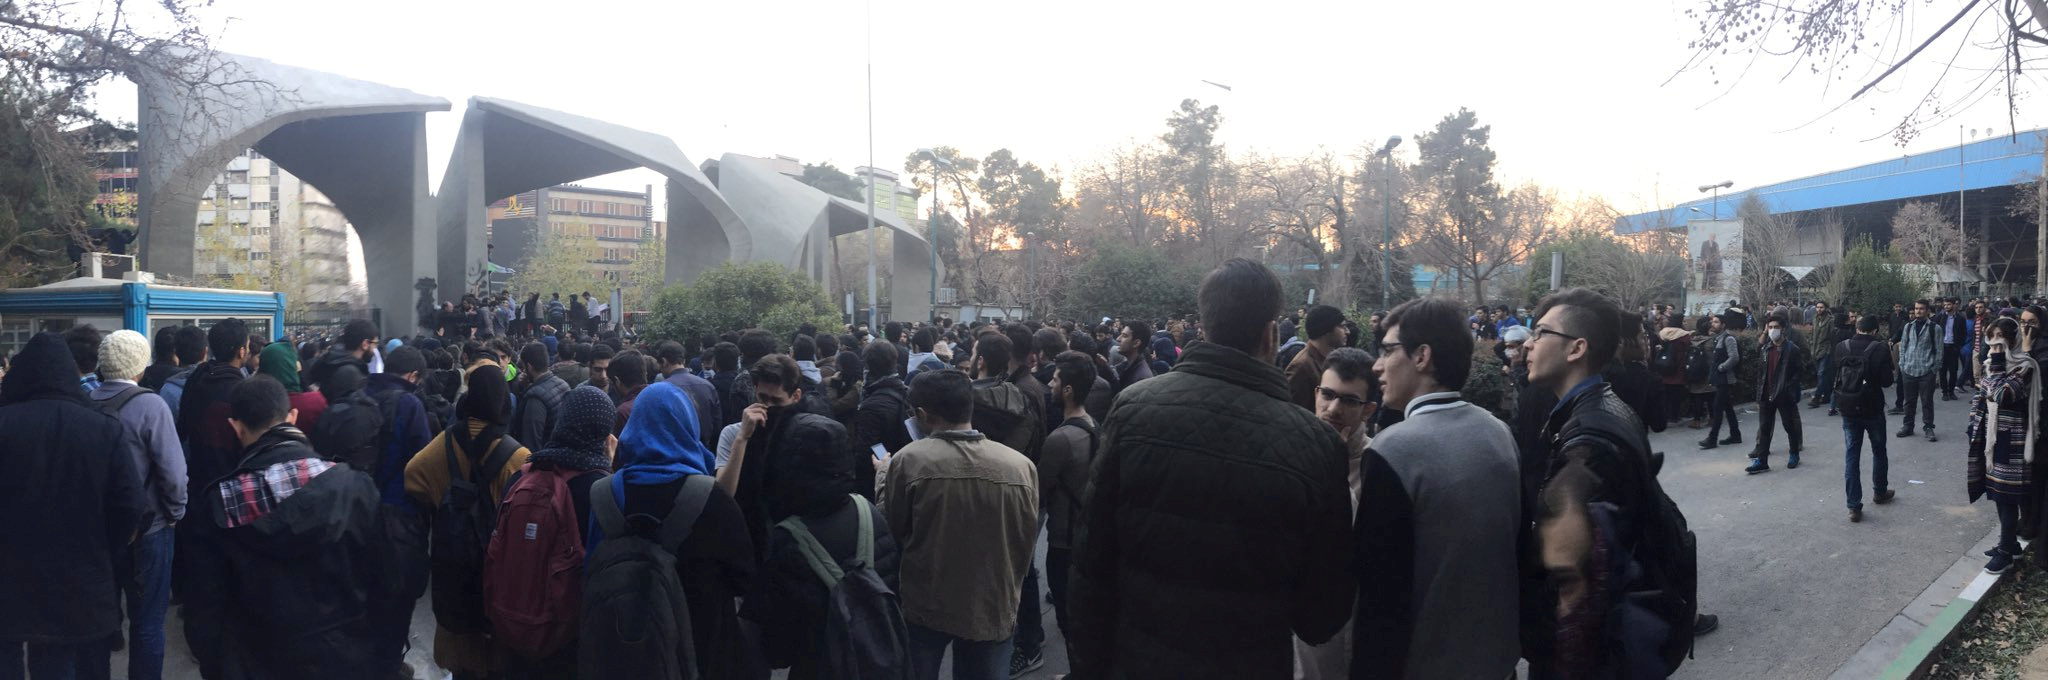 People protest near the University of Tehran, Iran, Dec. 30, 2017, in this photo obtained from social media.